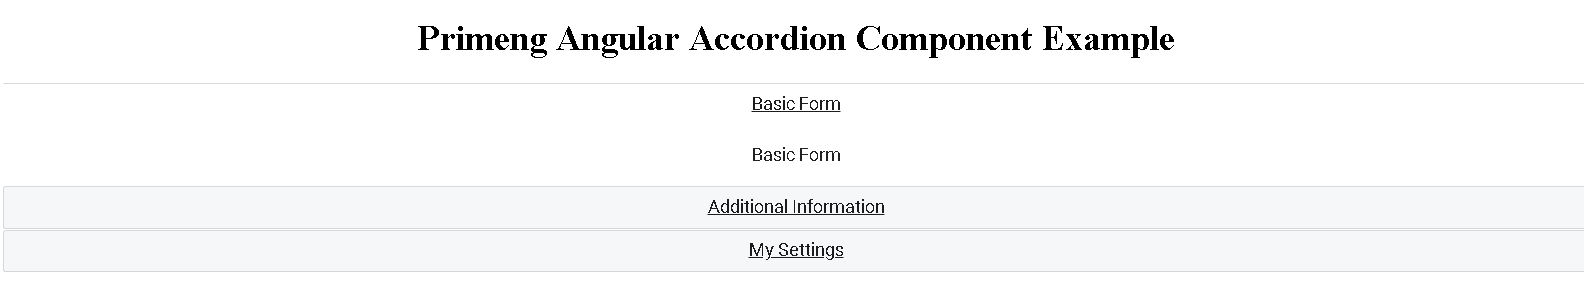 primeng Accordion Angular Example